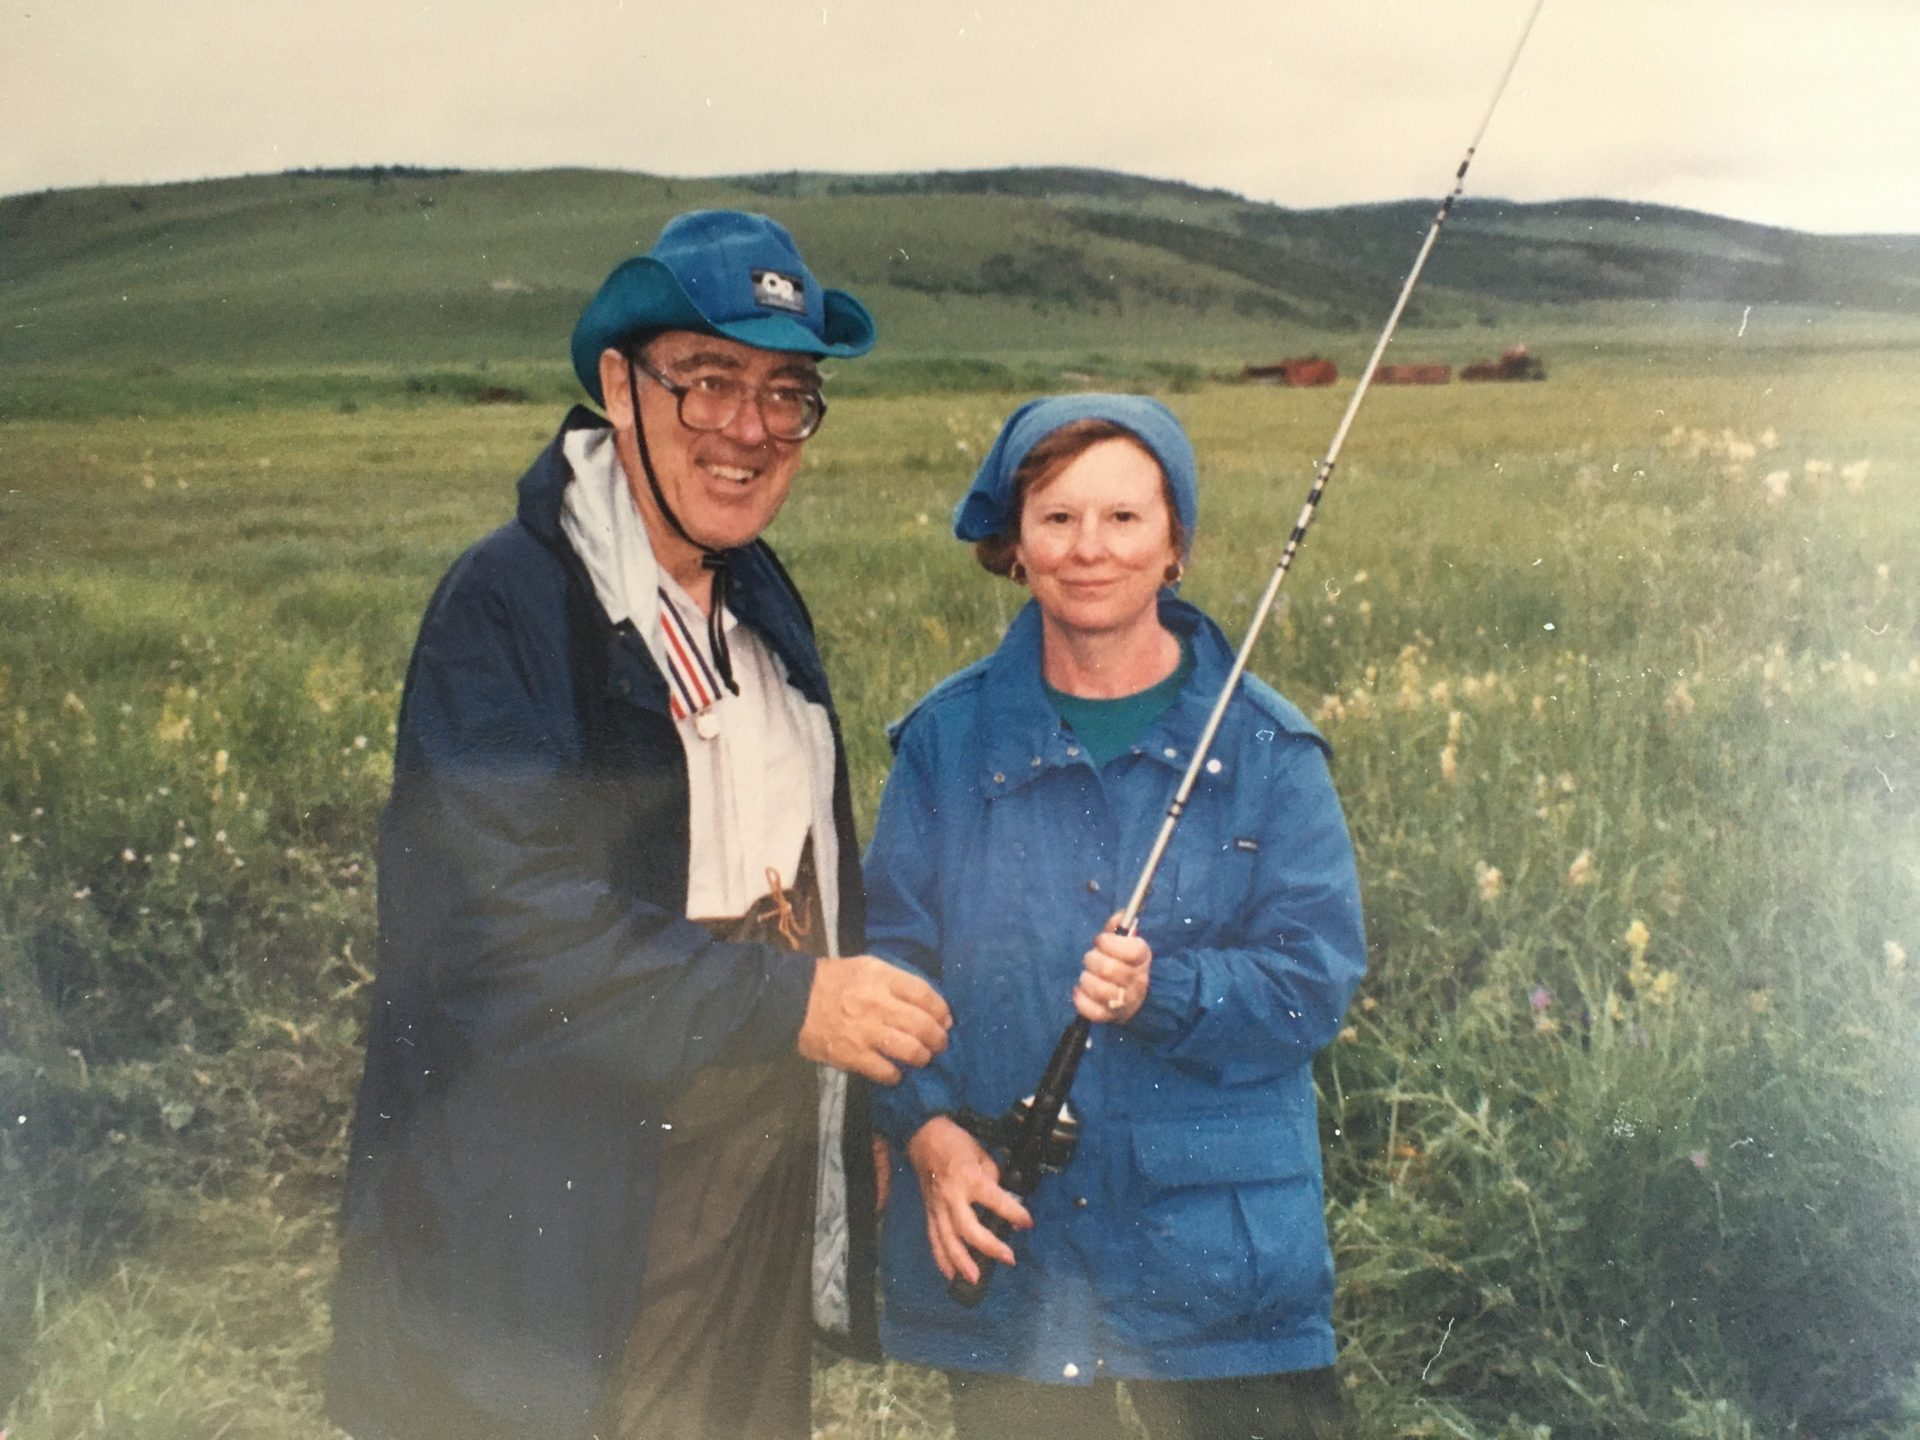 Dick and Thelma fishing in Mongoloa, July 1990